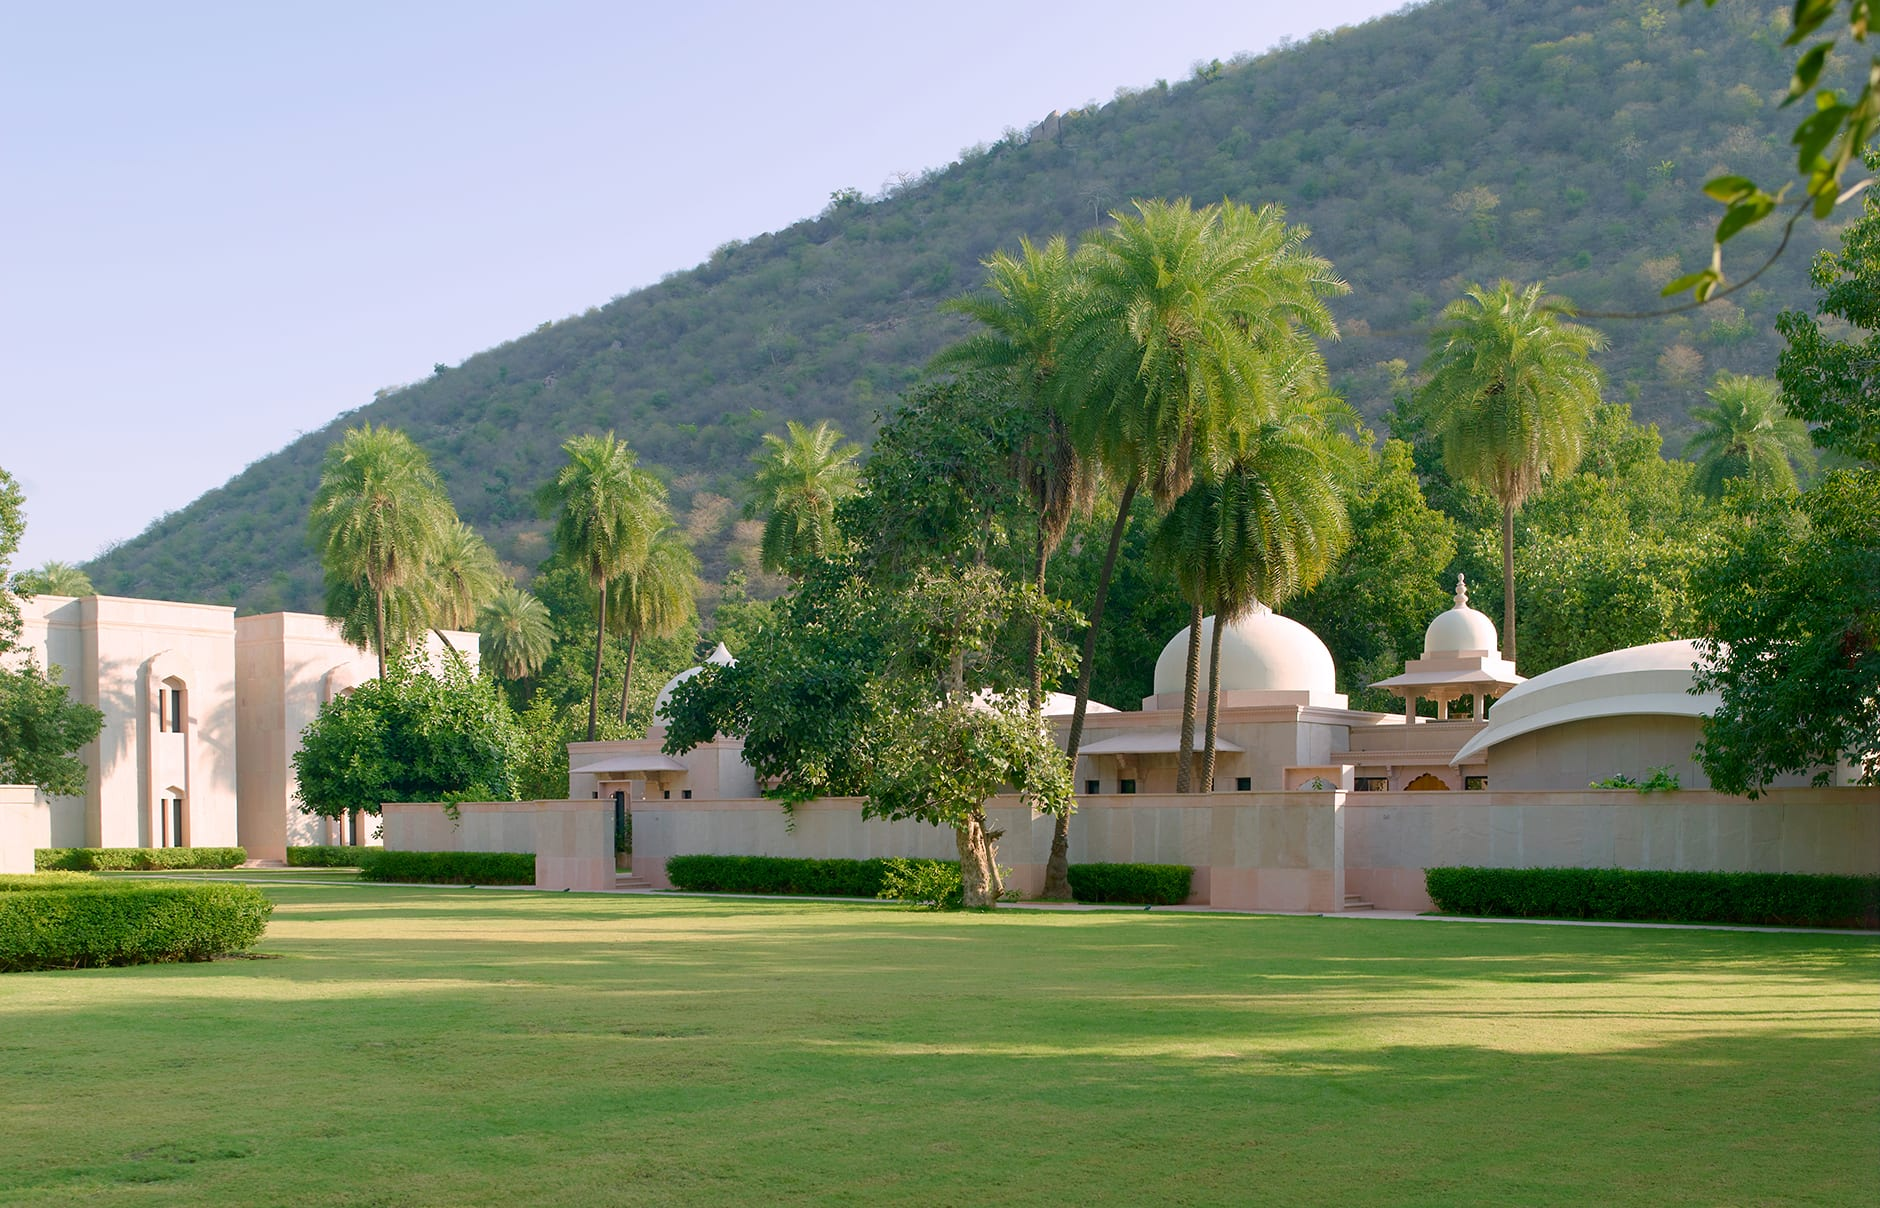 Pool Pavilion Exterior. Amanbagh, Alwar, Rajasthan, India. Luxury Hotel Review by TravelPlusStyle. Photo © Aman Resorts